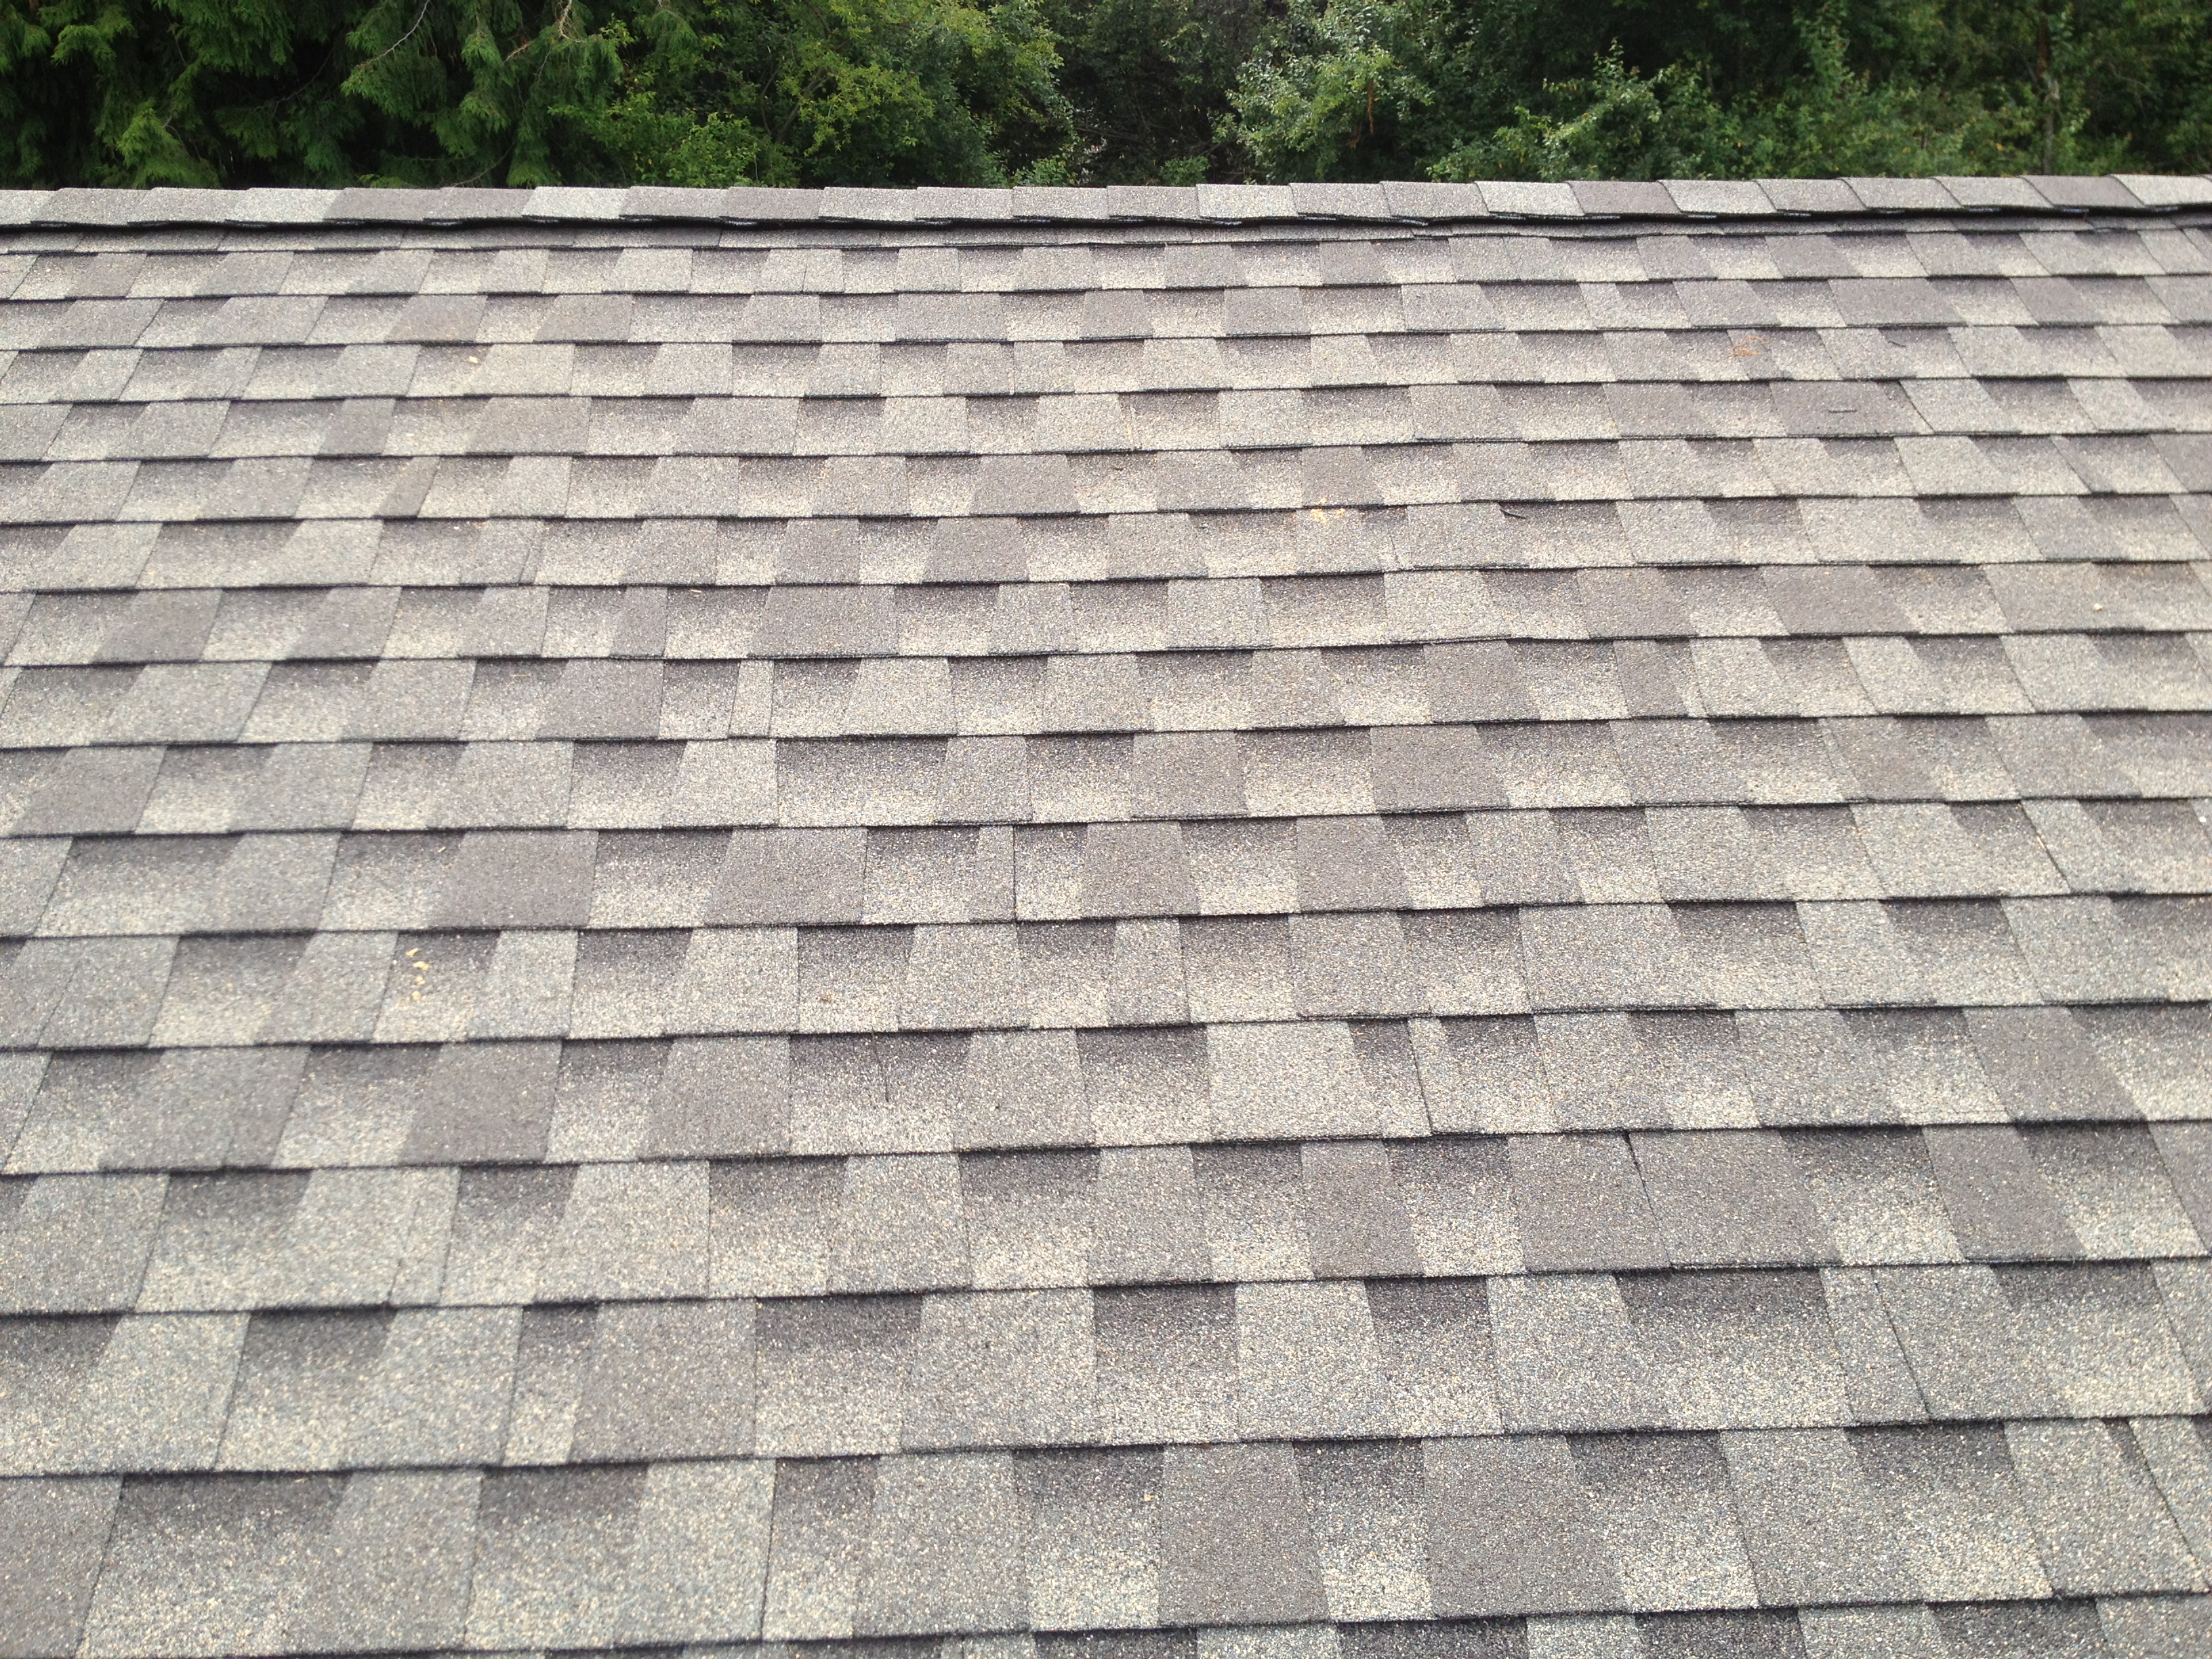 awesome gaf timberline hd in gray for interesting roofing ideas